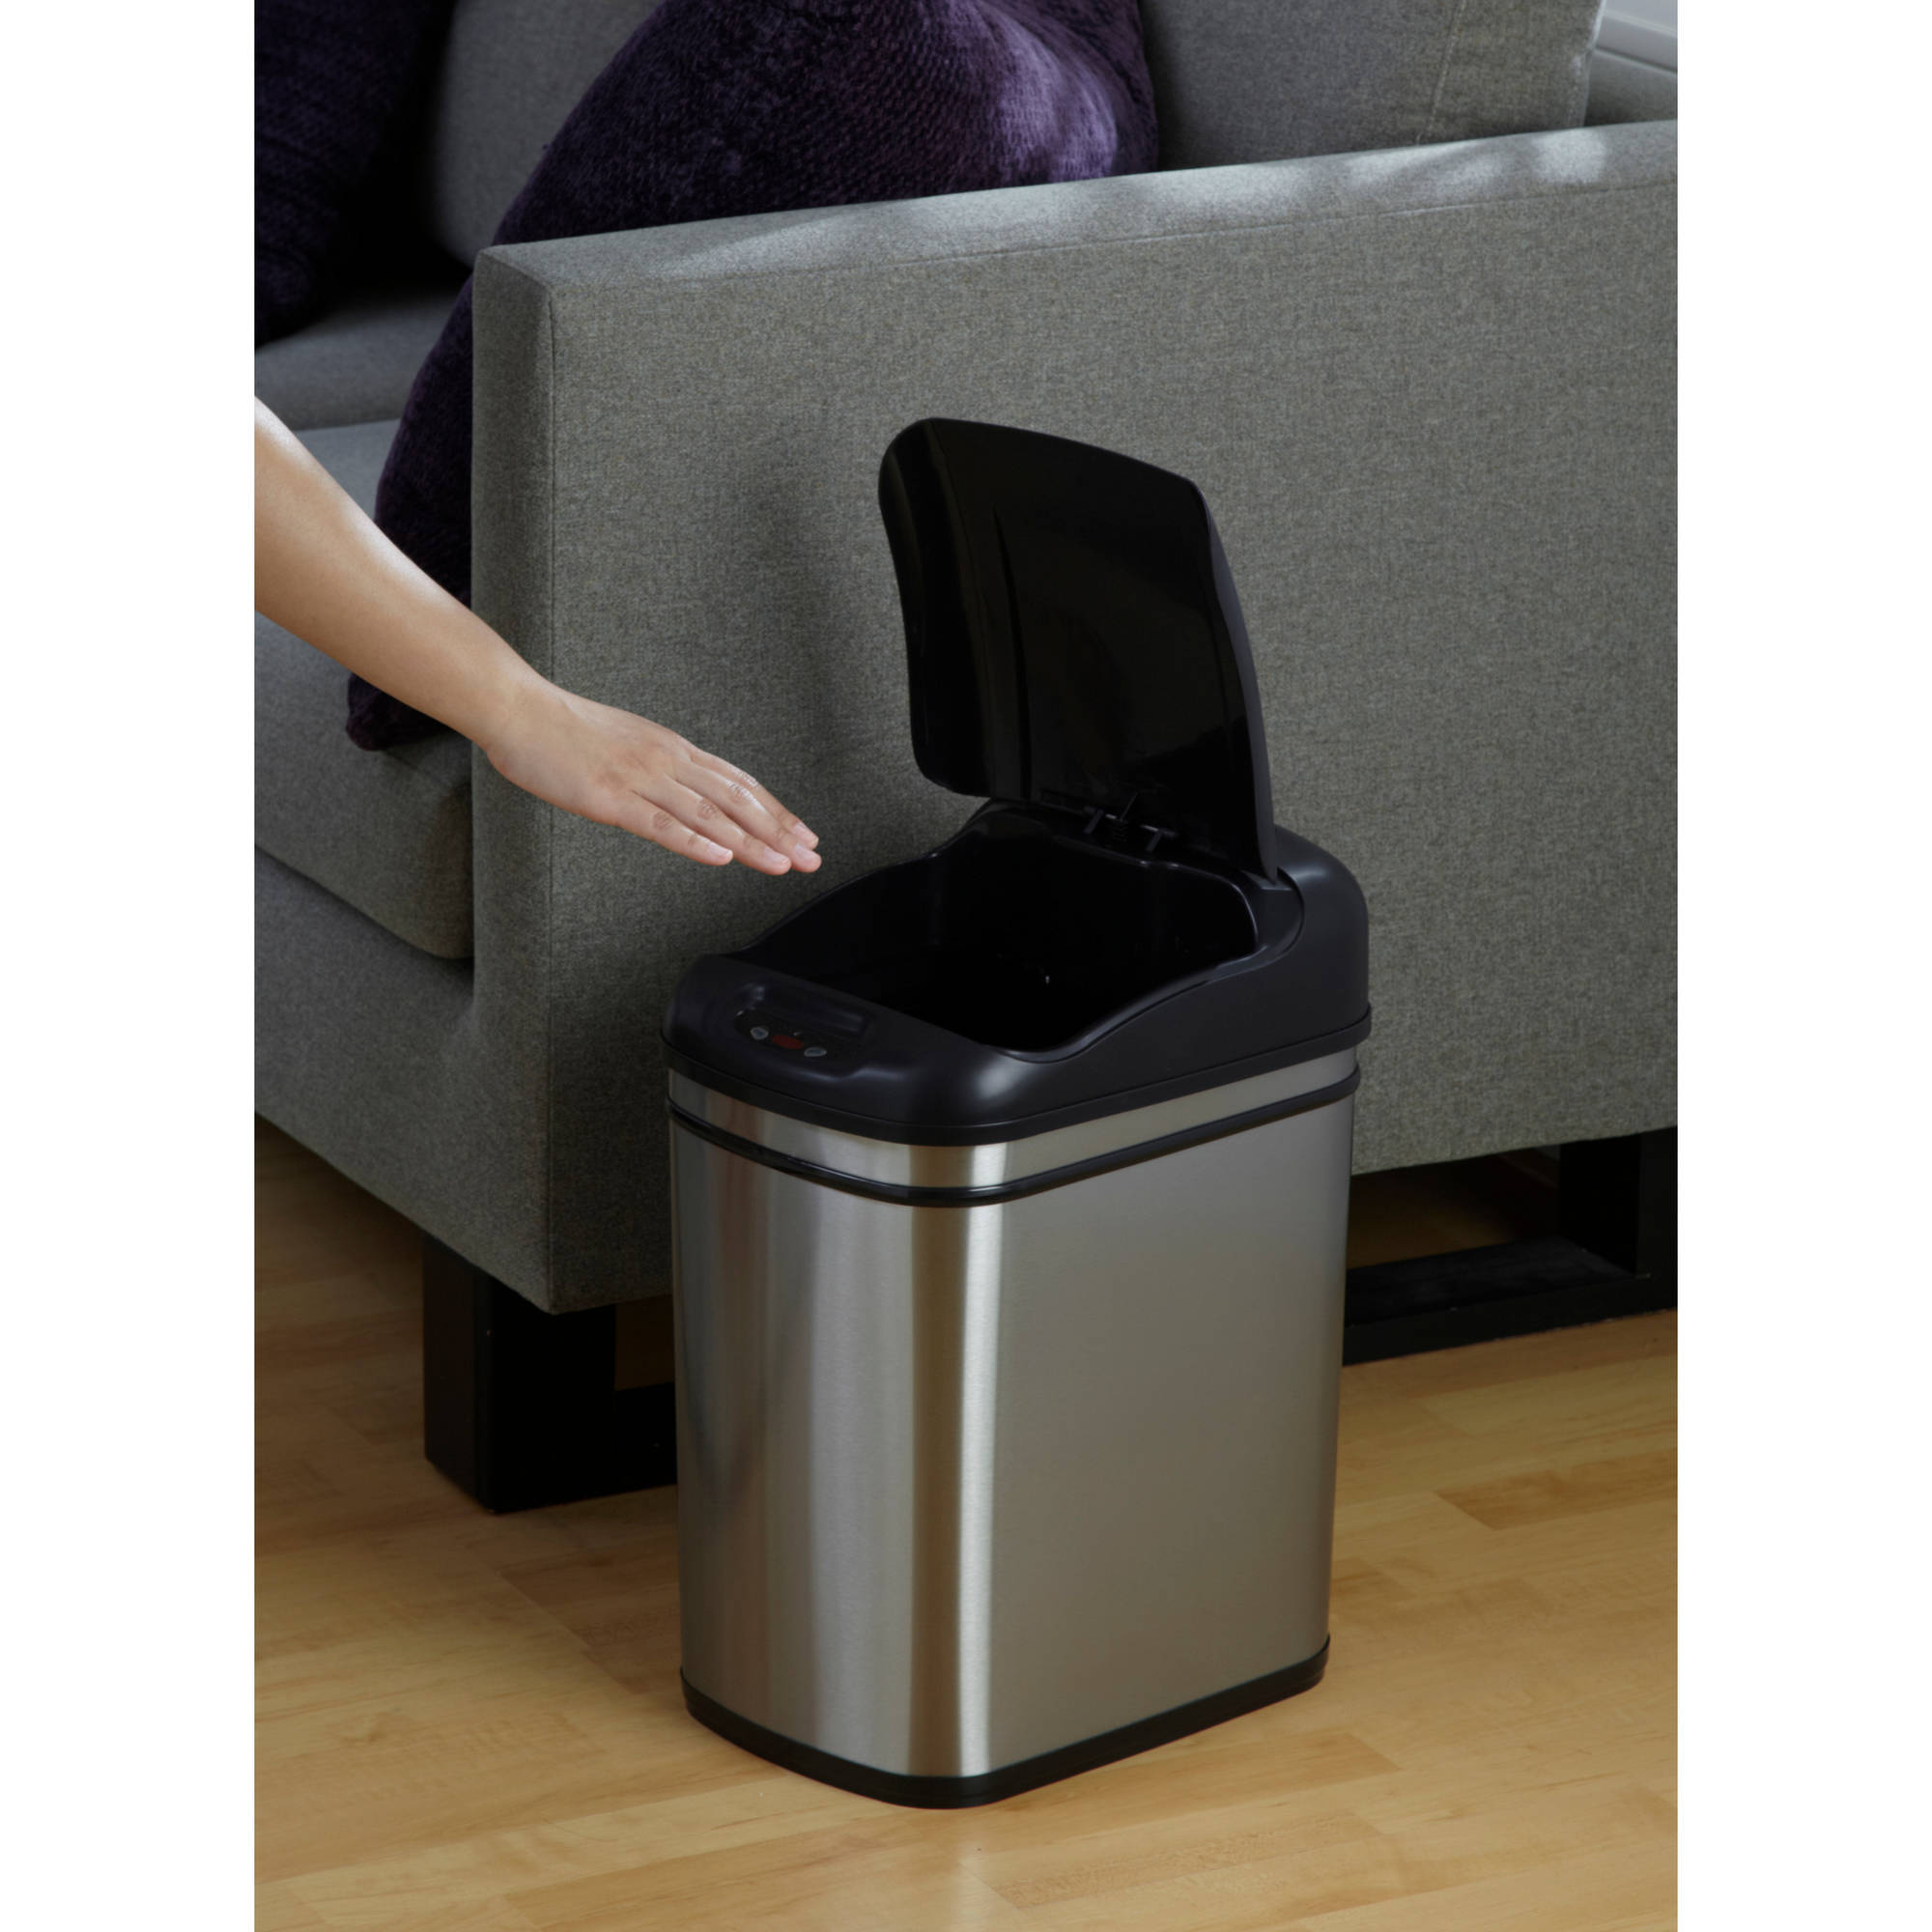 nine stars 6 3 gallon hands free infrared motion sensor trash can